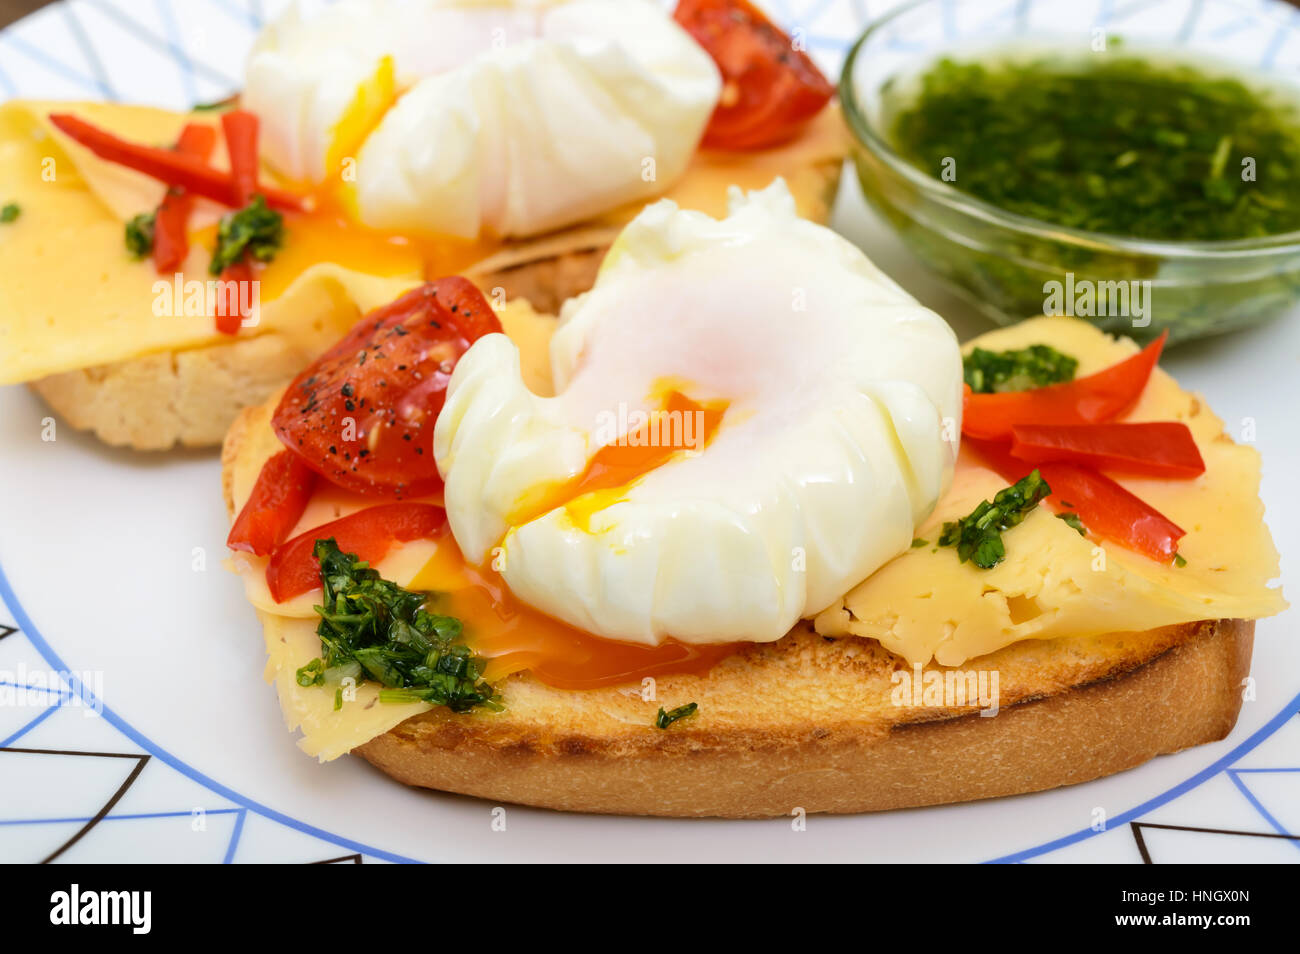 Crispy toast with poached egg, cheese, peppers, tomatoes, souse on a plate. Close up - Stock Image